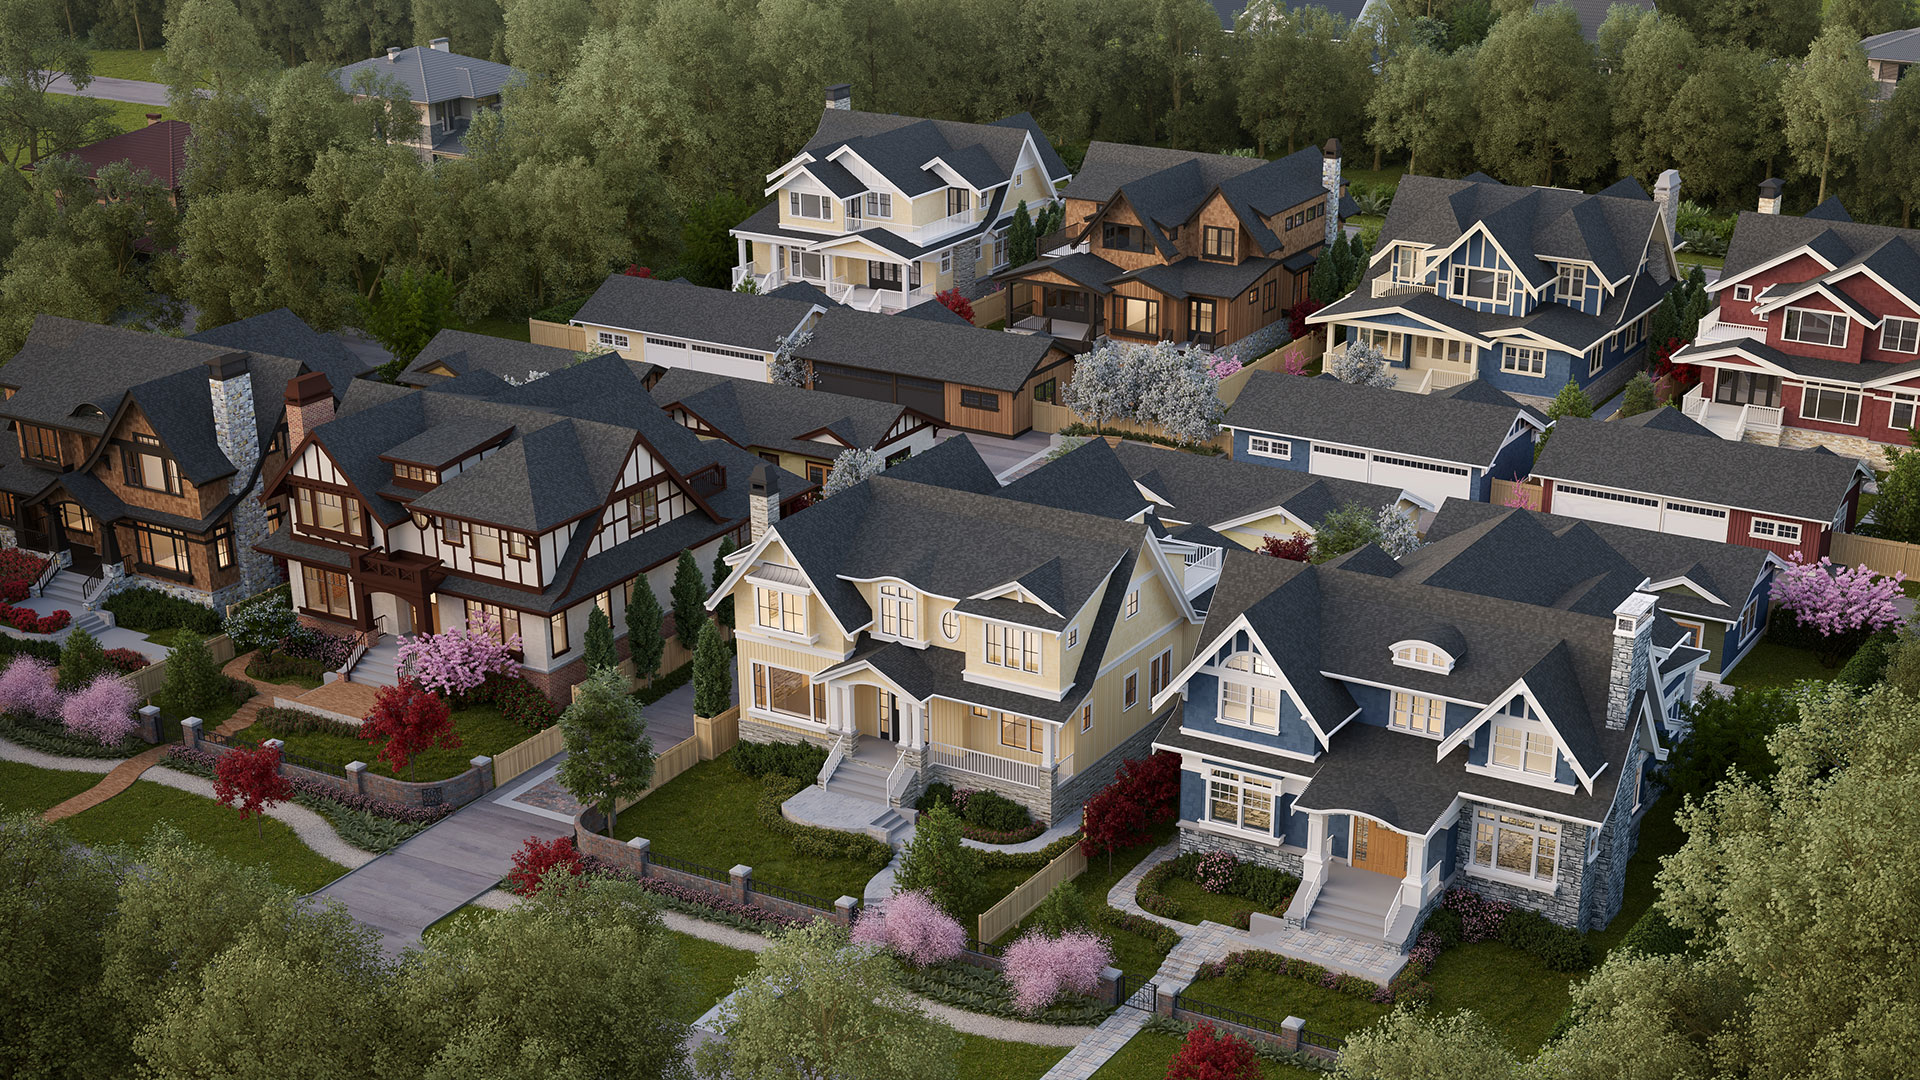 Mccleery And Magee Single Family House Development Birdseye